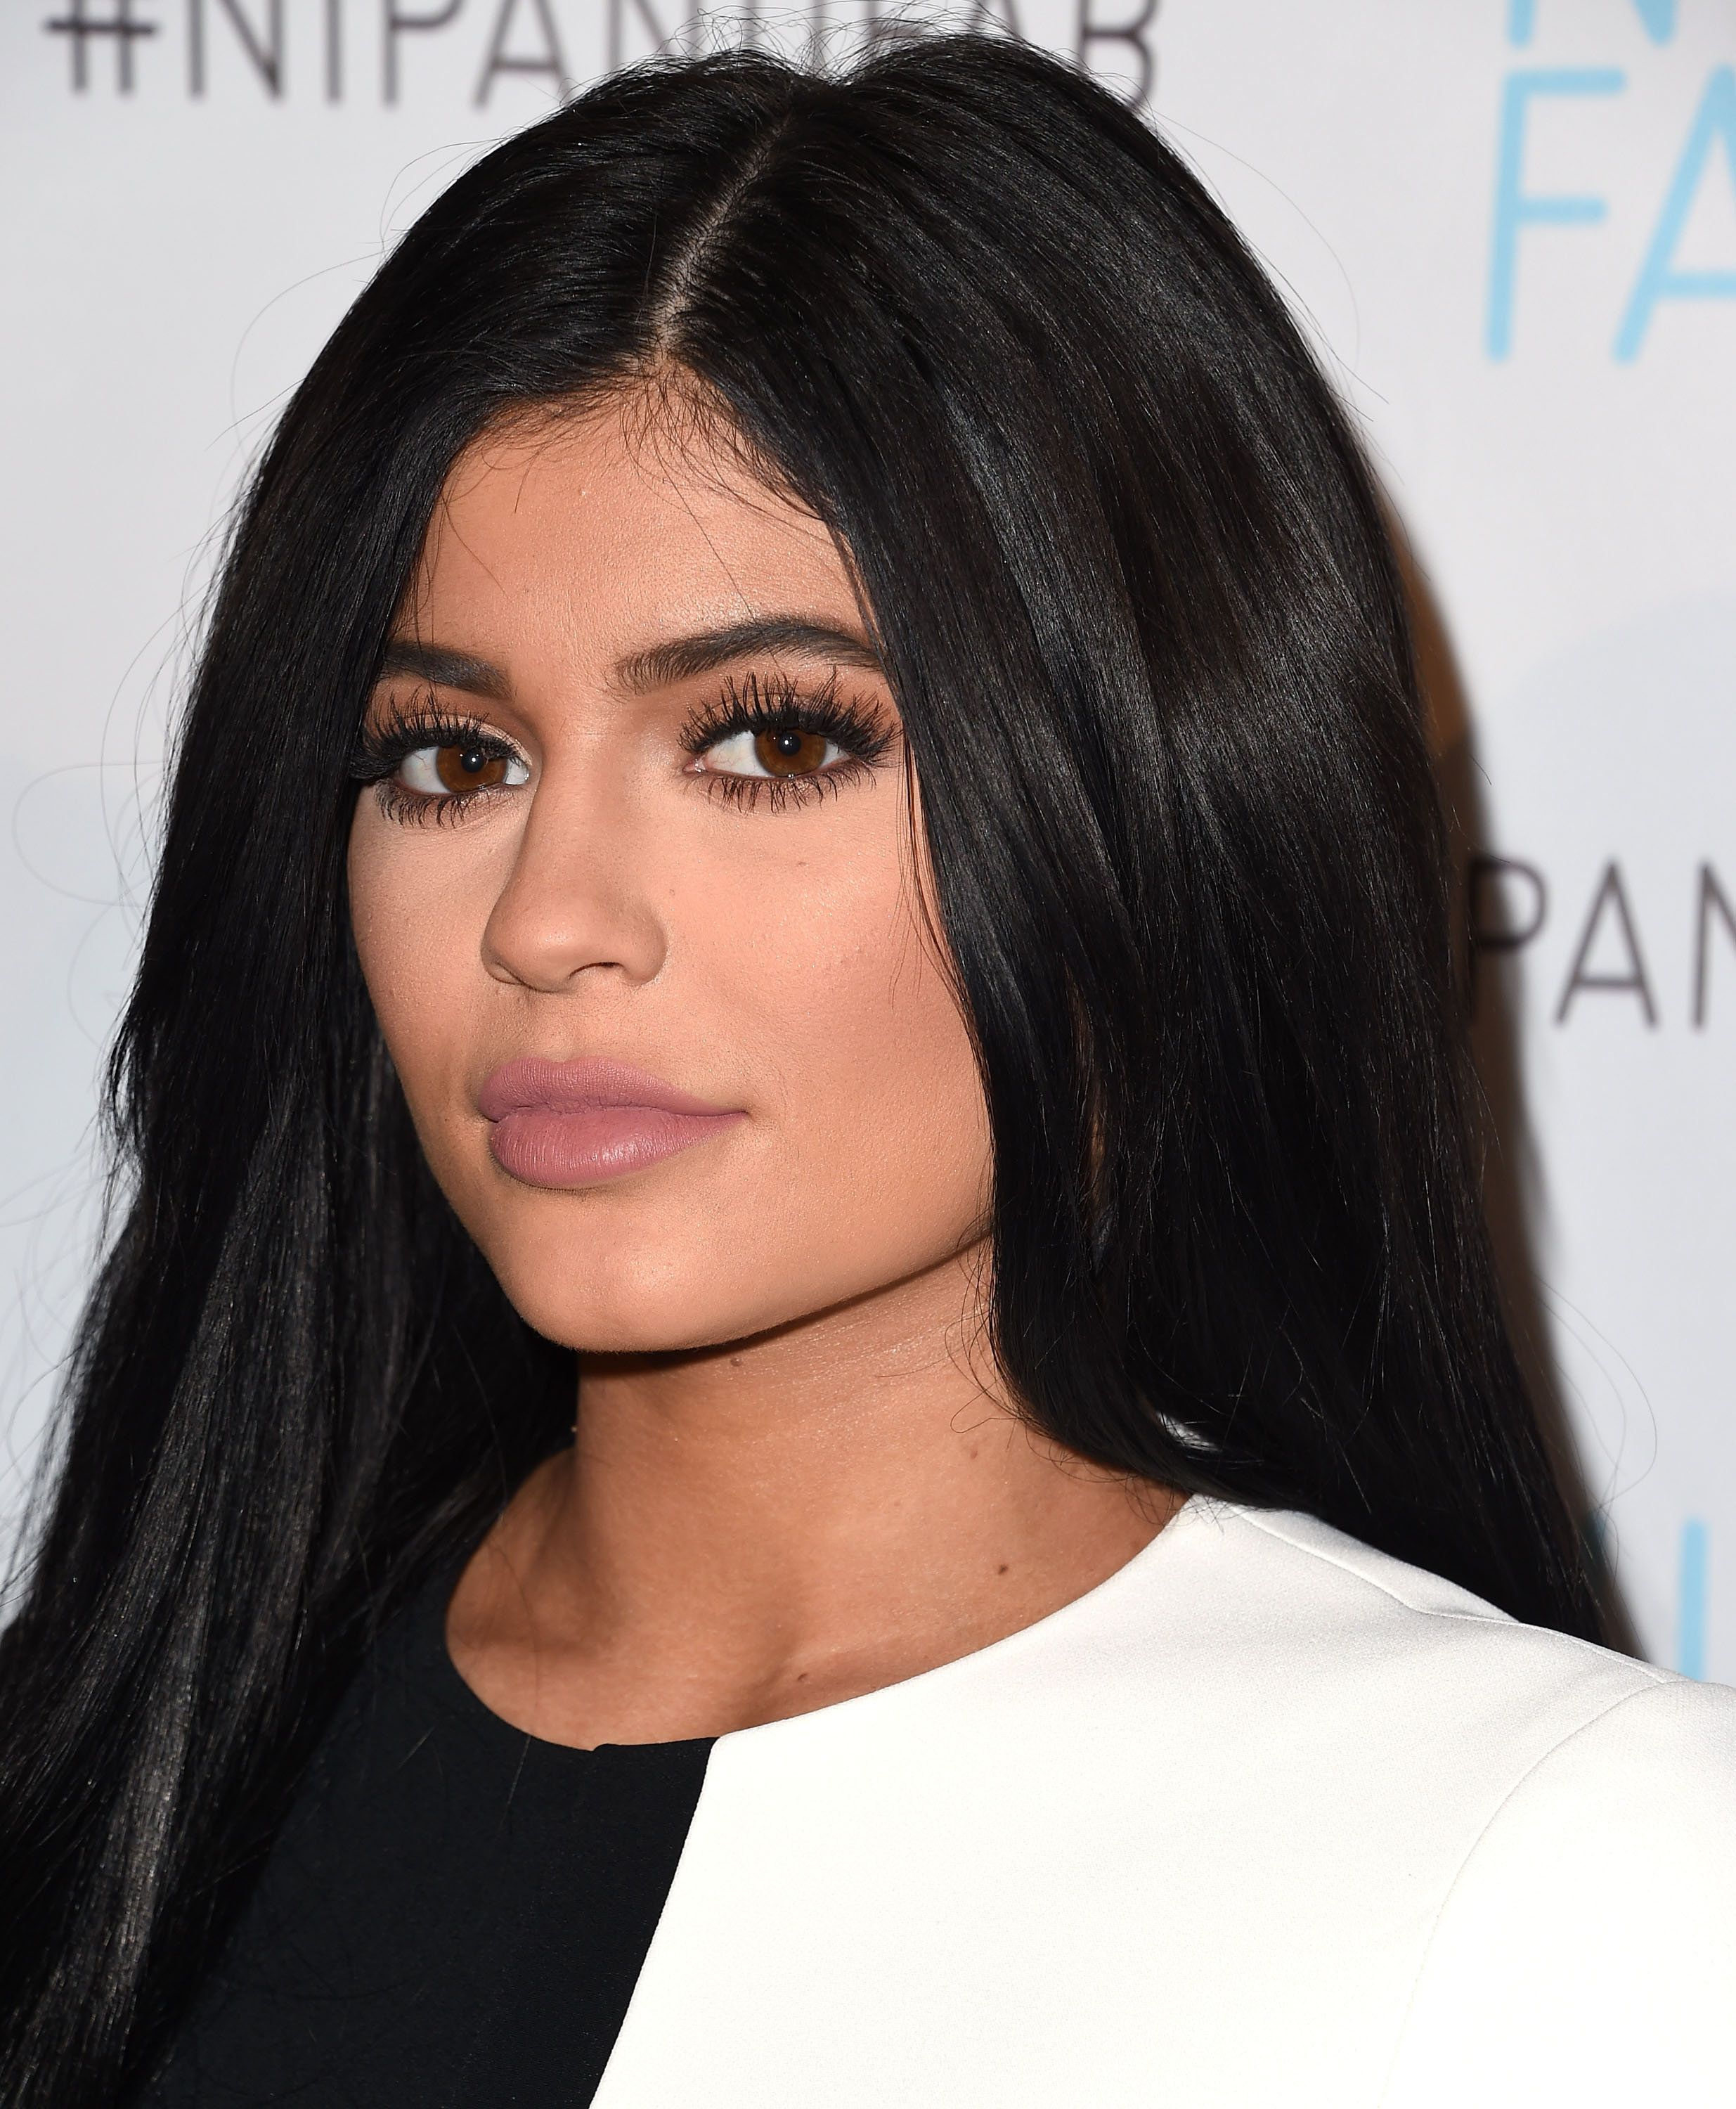 HOLLYWOOD, CA - DECEMBER 15:  Kylie Jenner Announced As Brand Ambassador For Nip + Fab at W Hollywood on December 15, 2015 in Hollywood, California.  (Photo by Steve Granitz/WireImage)